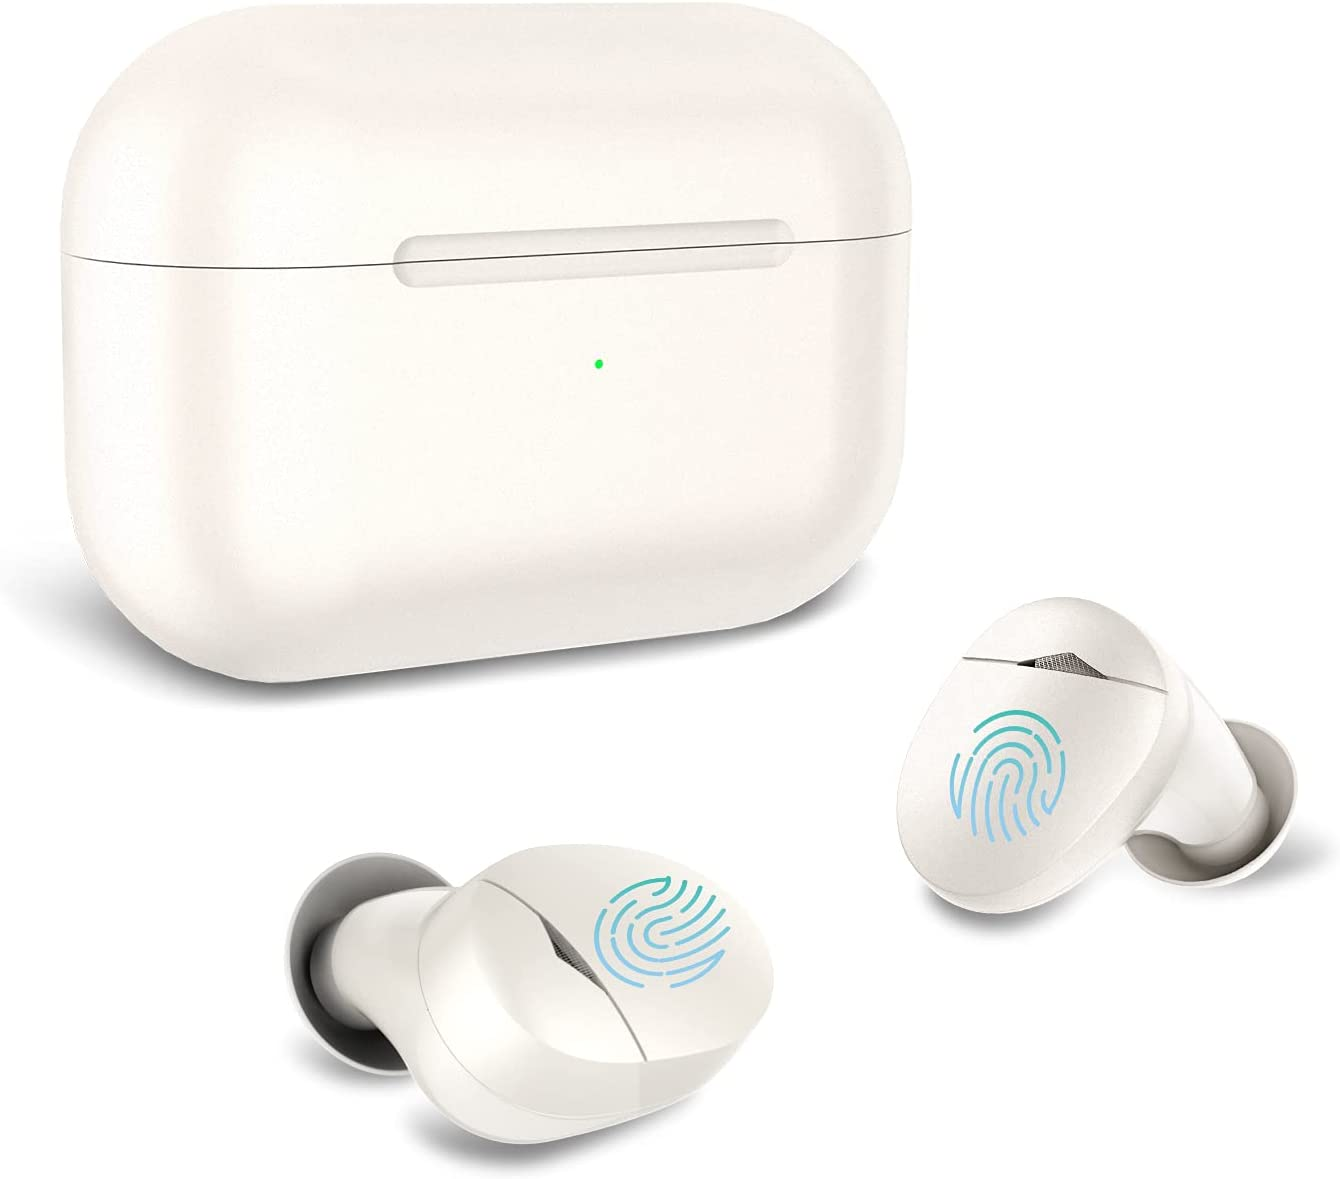 Cirtek True Wireless Earbuds - Bluetooth 5.0 Headphones with Charging Case, Touch Control, Built-in Call Mic, and Deep Bass Sound Waterproof TWS Stereo Earphones for Work, Sport (White)